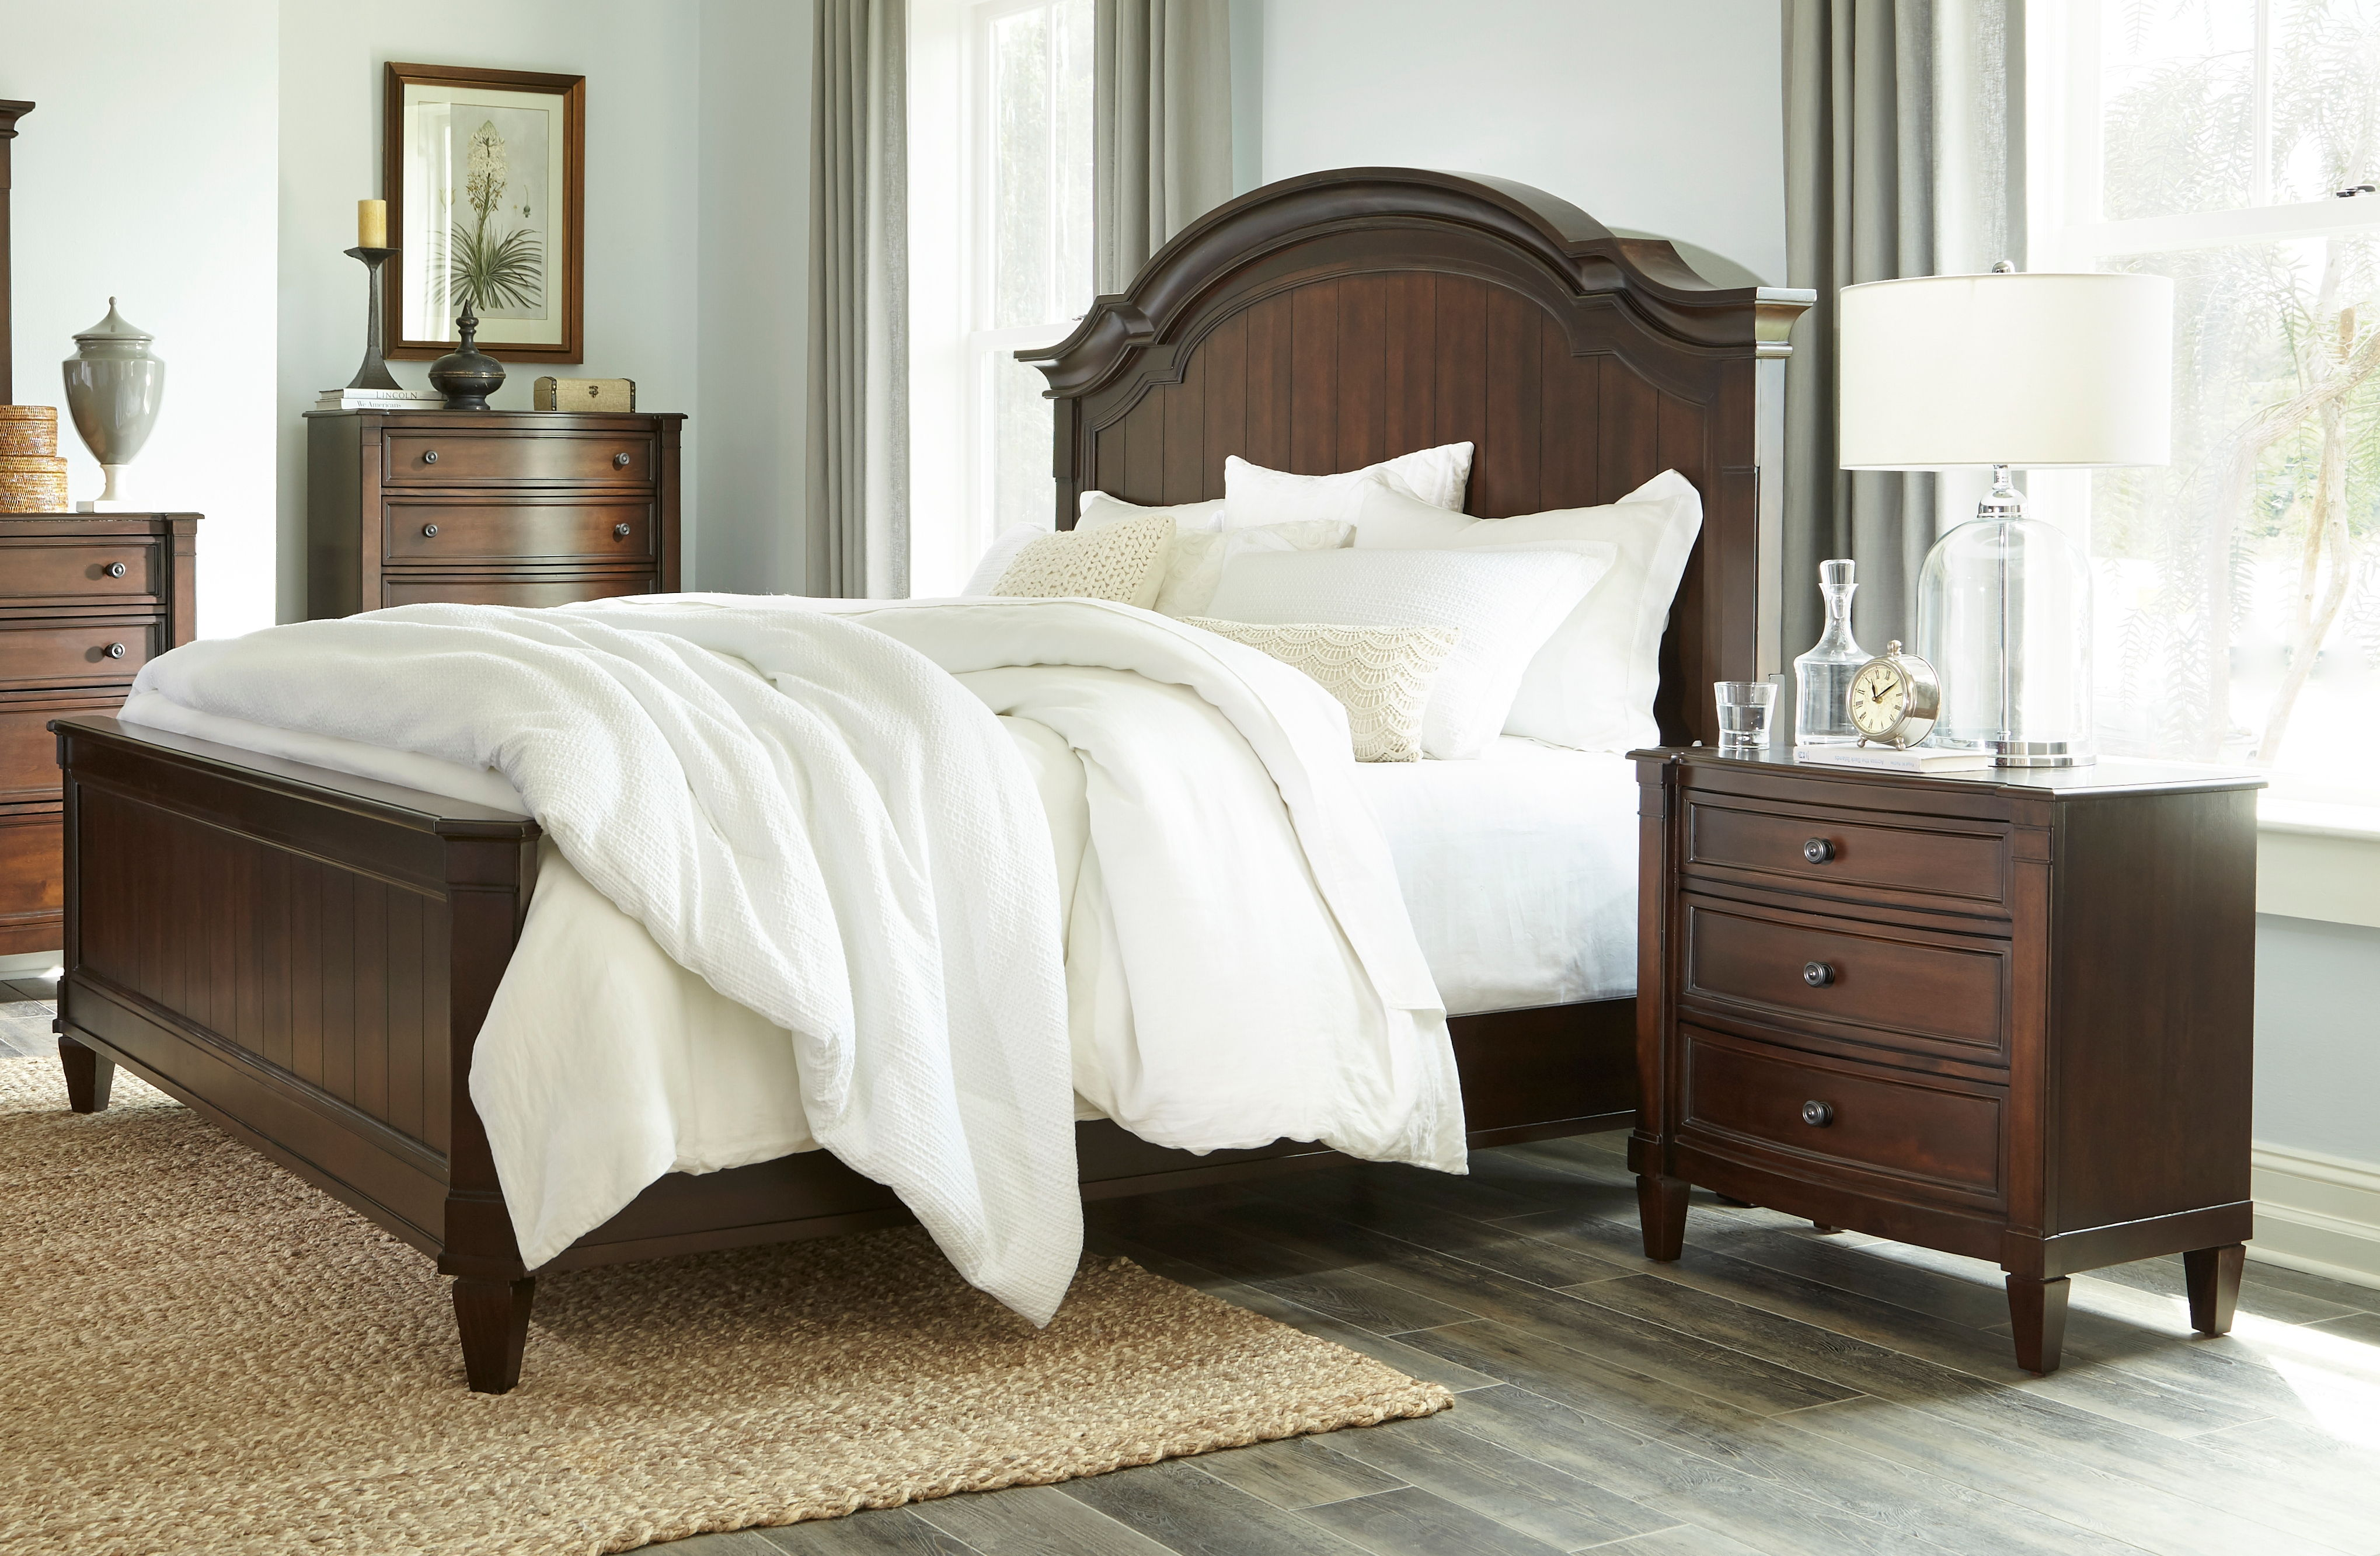 Standard Furniture Mallory Cherry 2pc Bedroom Set with Queen Bed